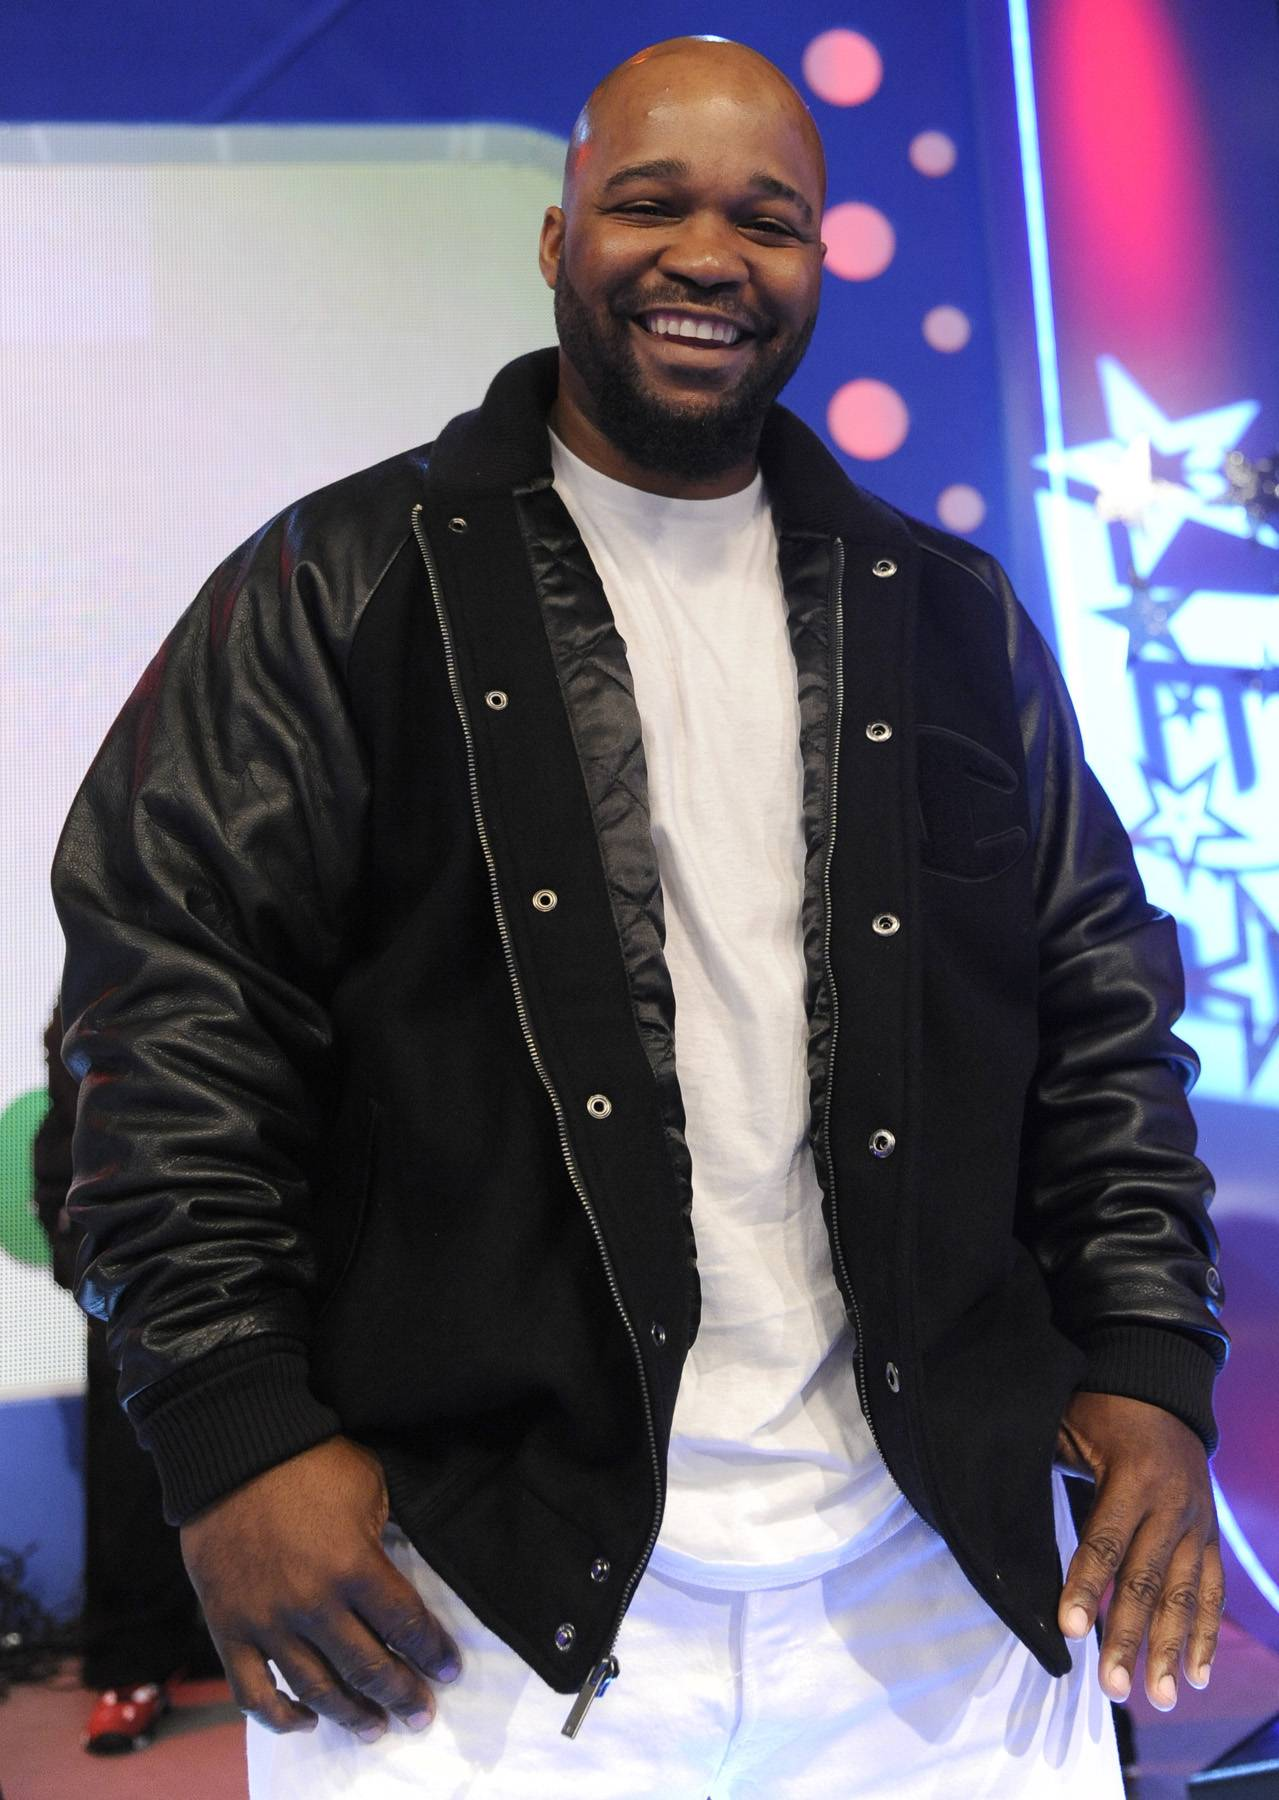 W.O.W. Begins! - Wild Out Wednesday competitor Jus K at 106 & Park, May 2, 2012. (Photo: John Ricard/BET)